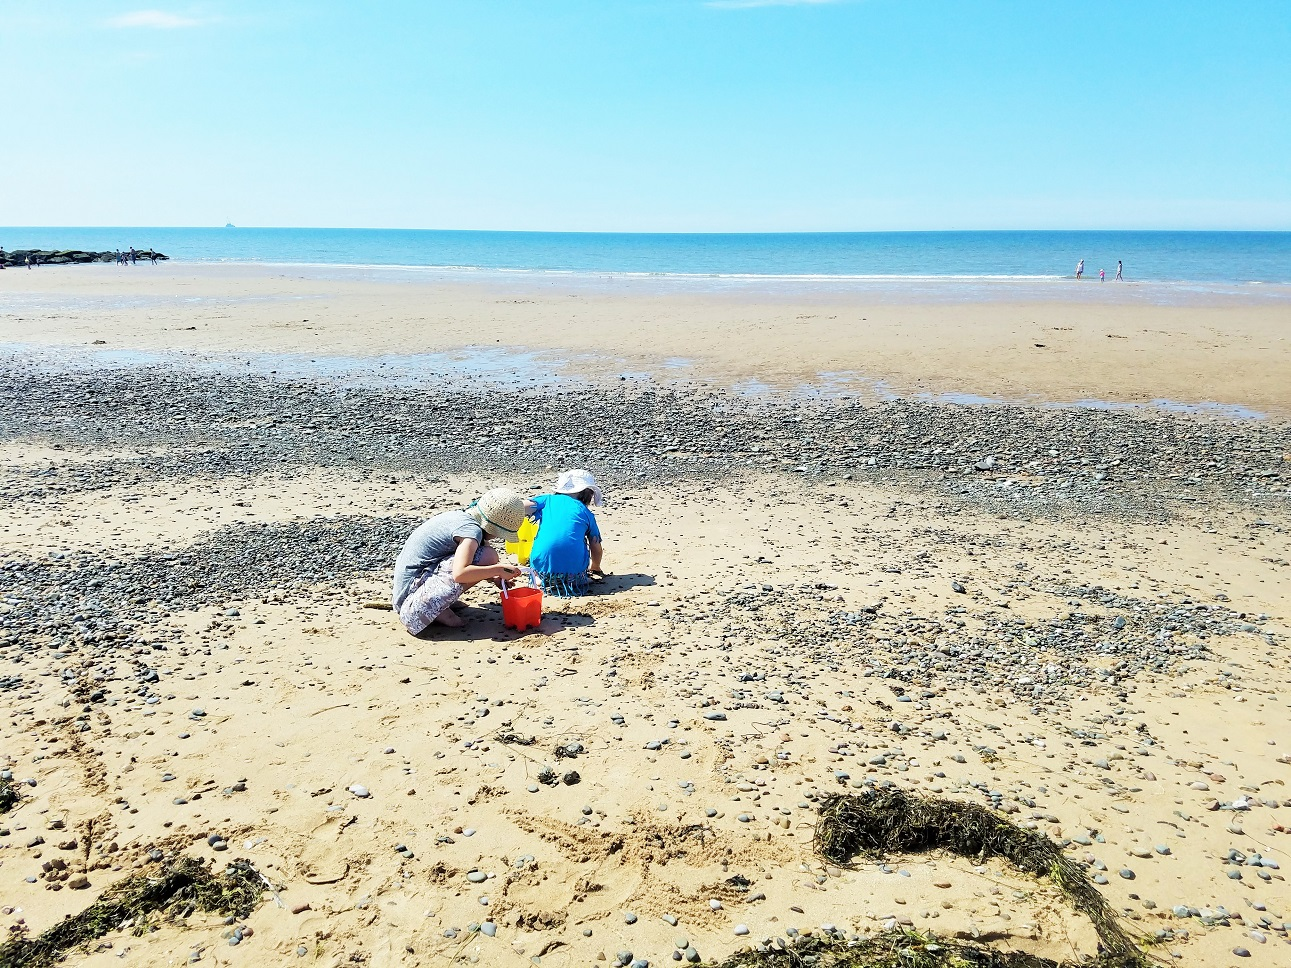 The kids are listening - is it okay to lie in front of your kids? - children collecting shells on the beach